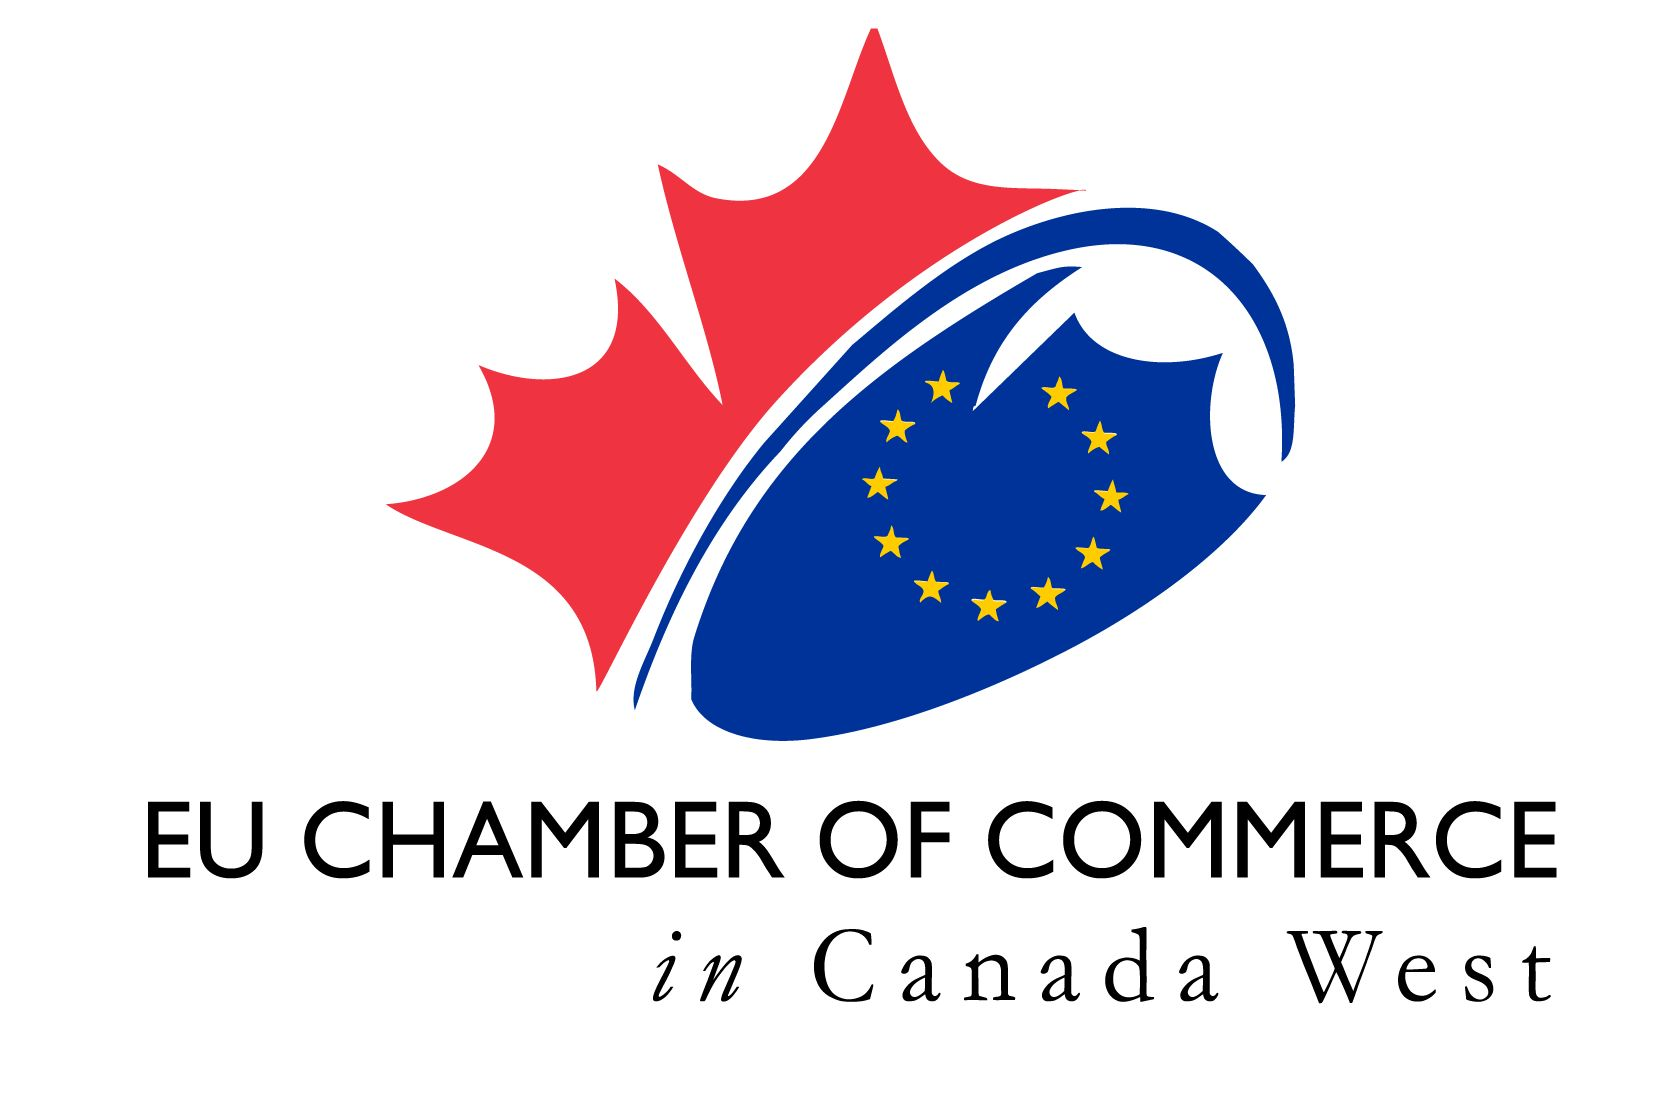 EU Chambre of Commerce in Canada West